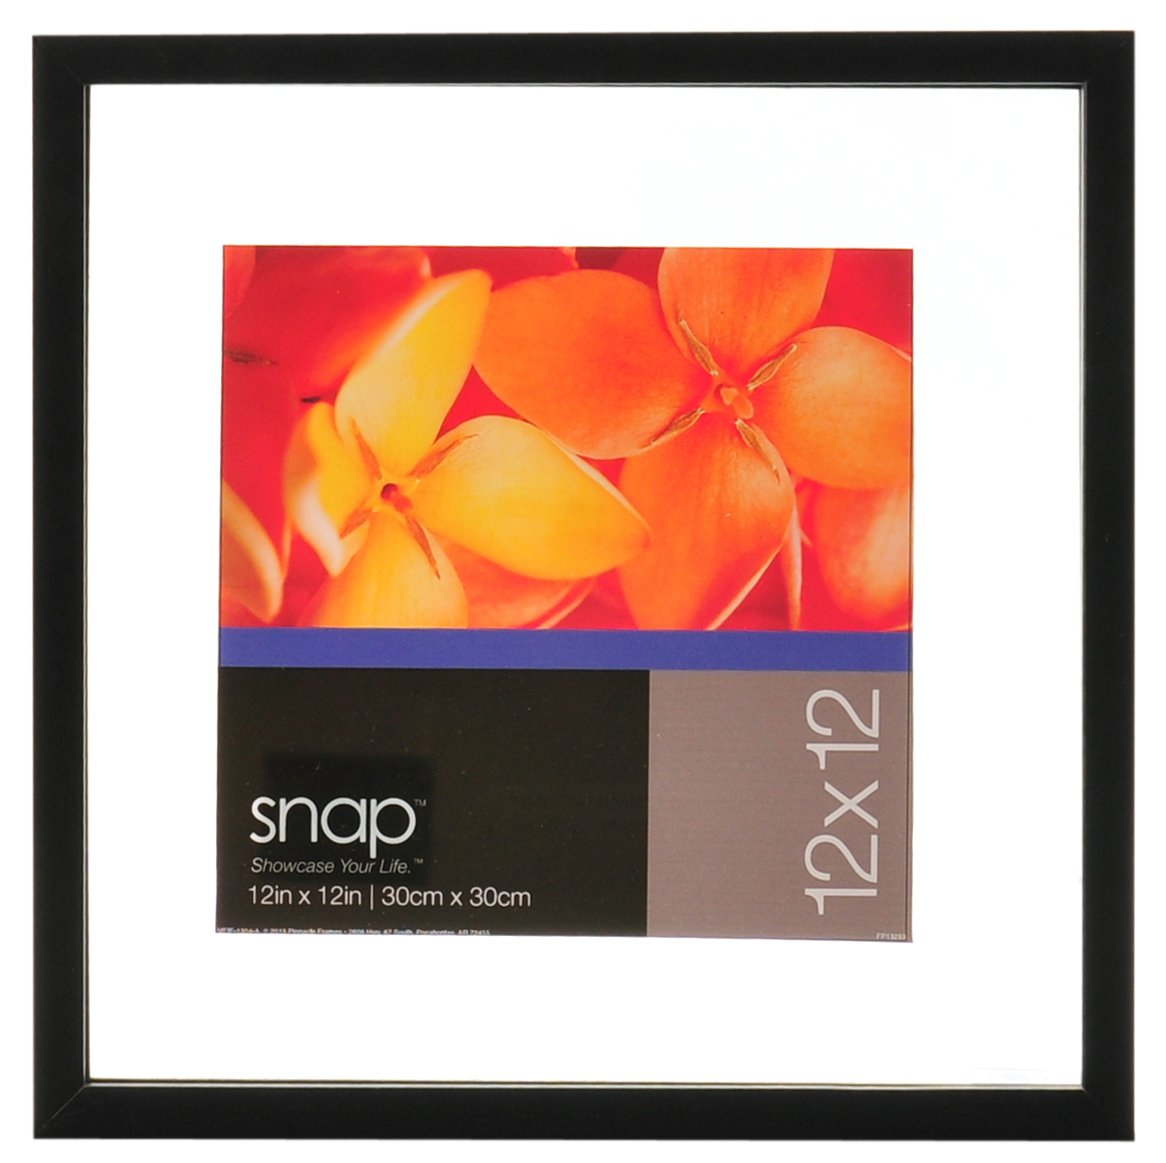 Amazon.com: Snap Wood Floating Wall Frame, 12 by 12-Inch, Black ...